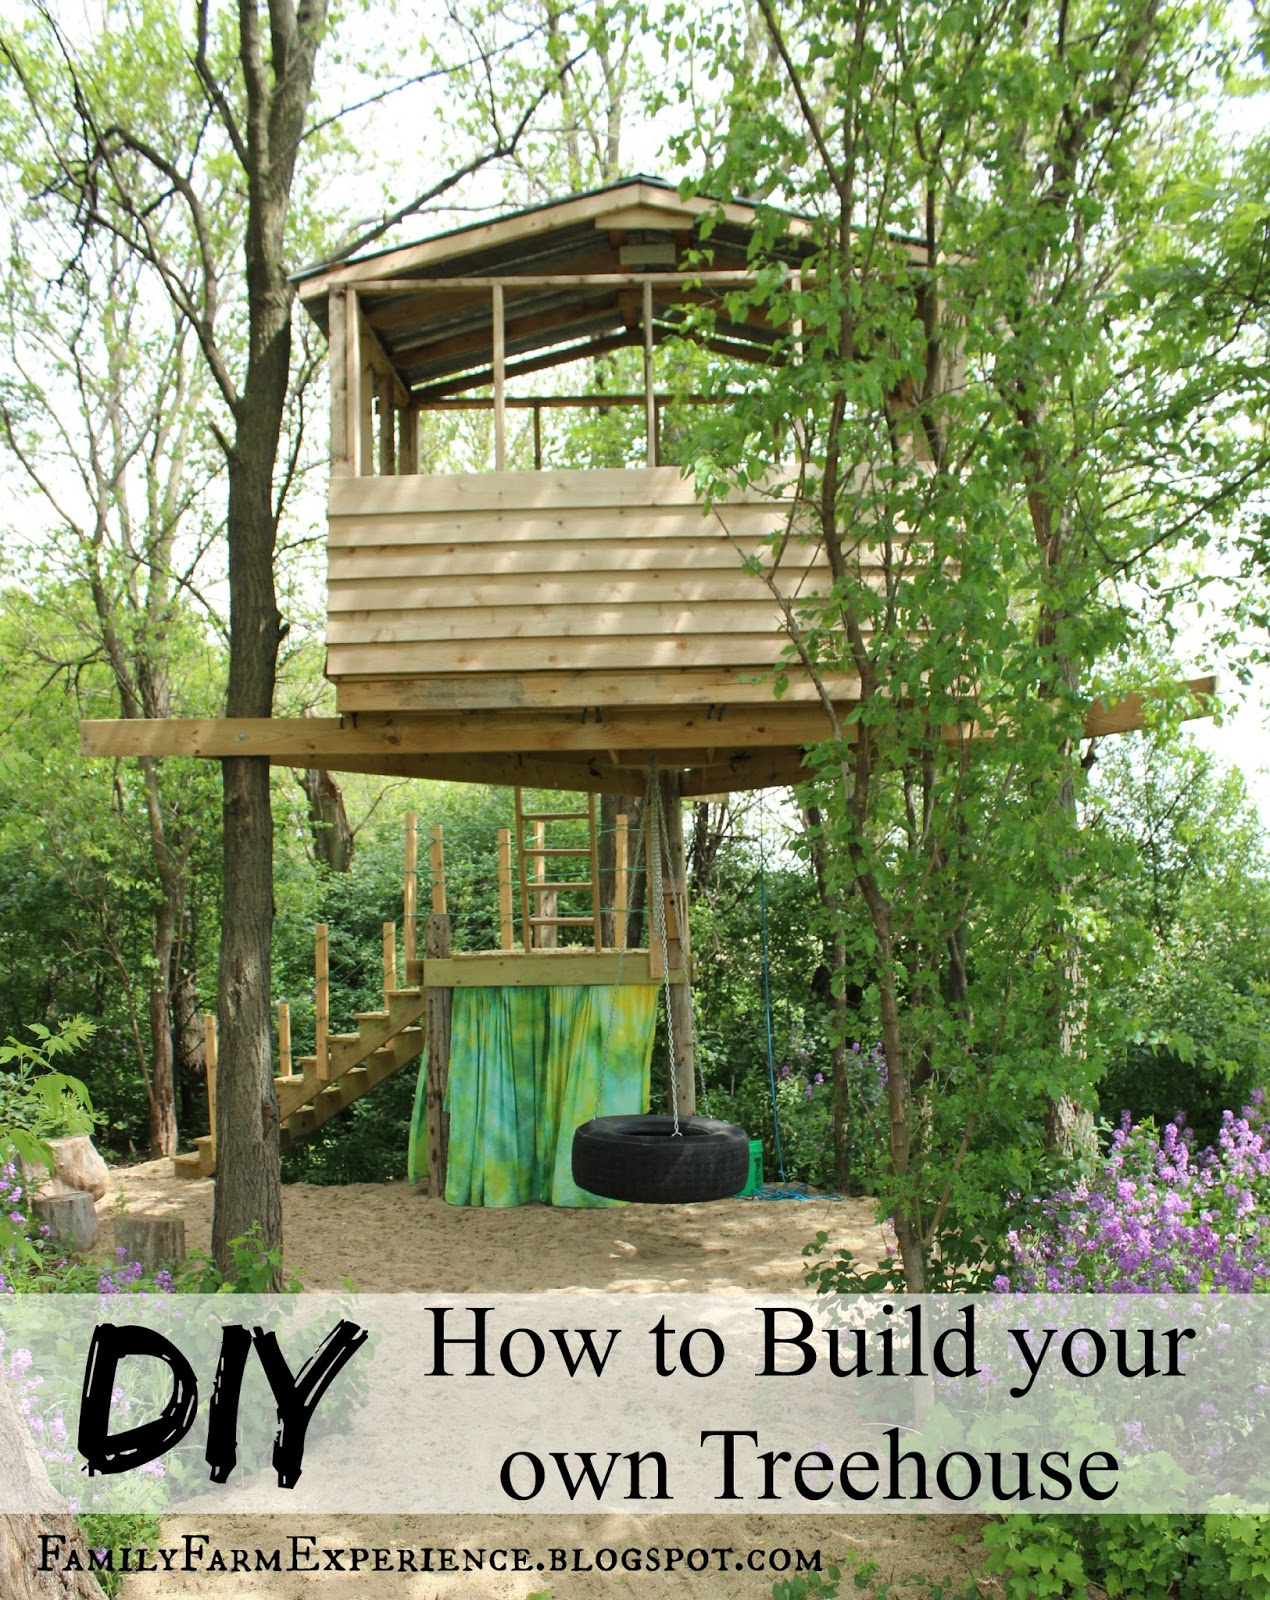 Family farm experience diy how to build your own treehouse How to build a farmhouse